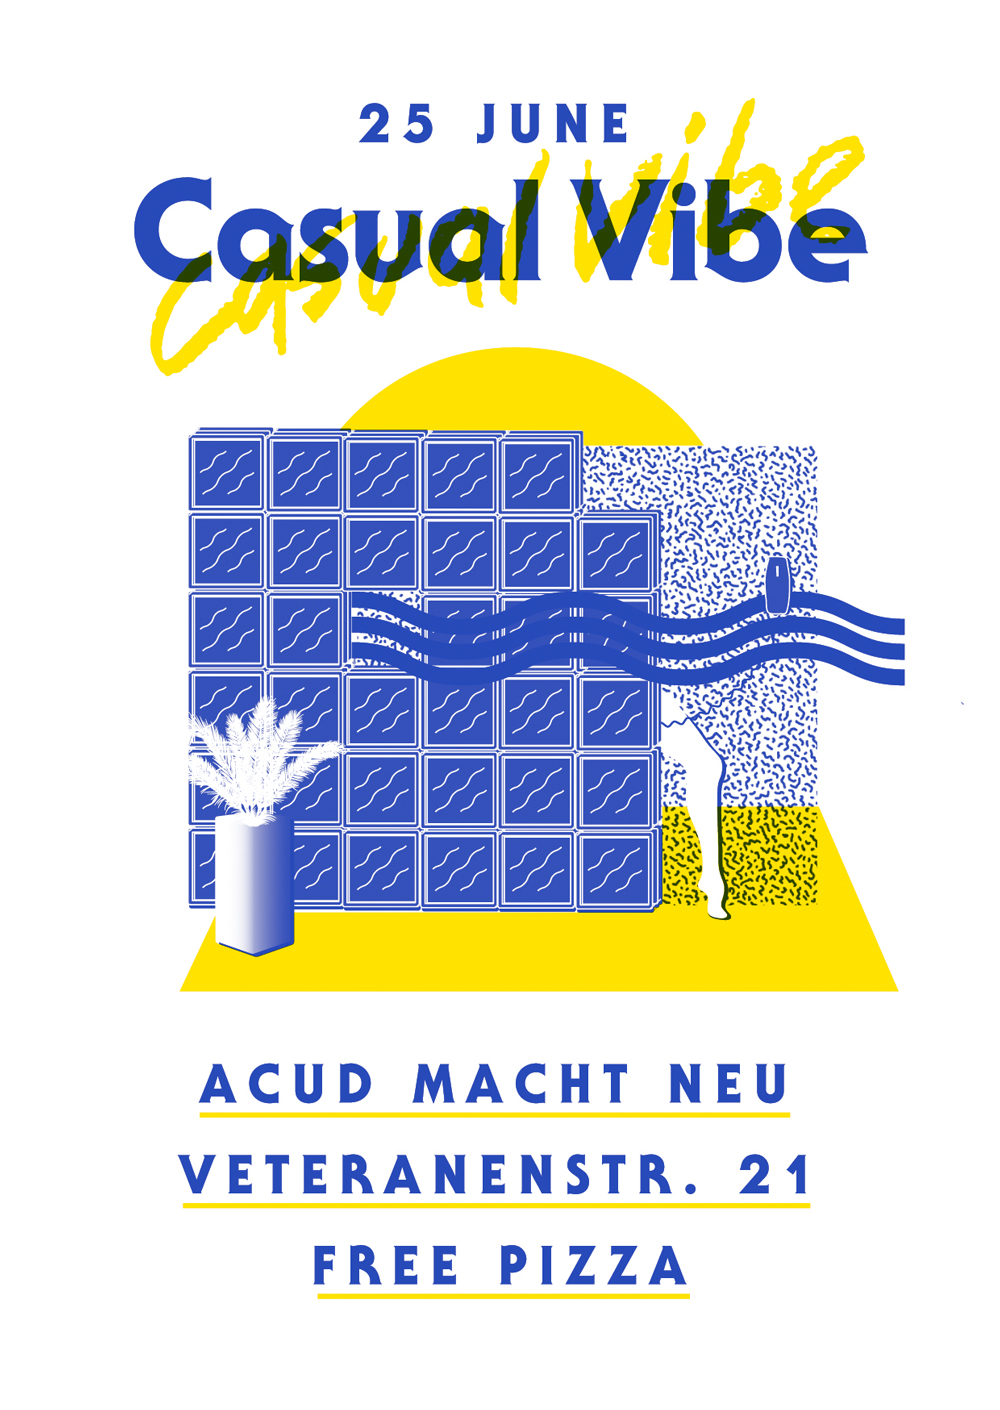 Casual-Vibe-Preview-Front-2016-06-25.jpg